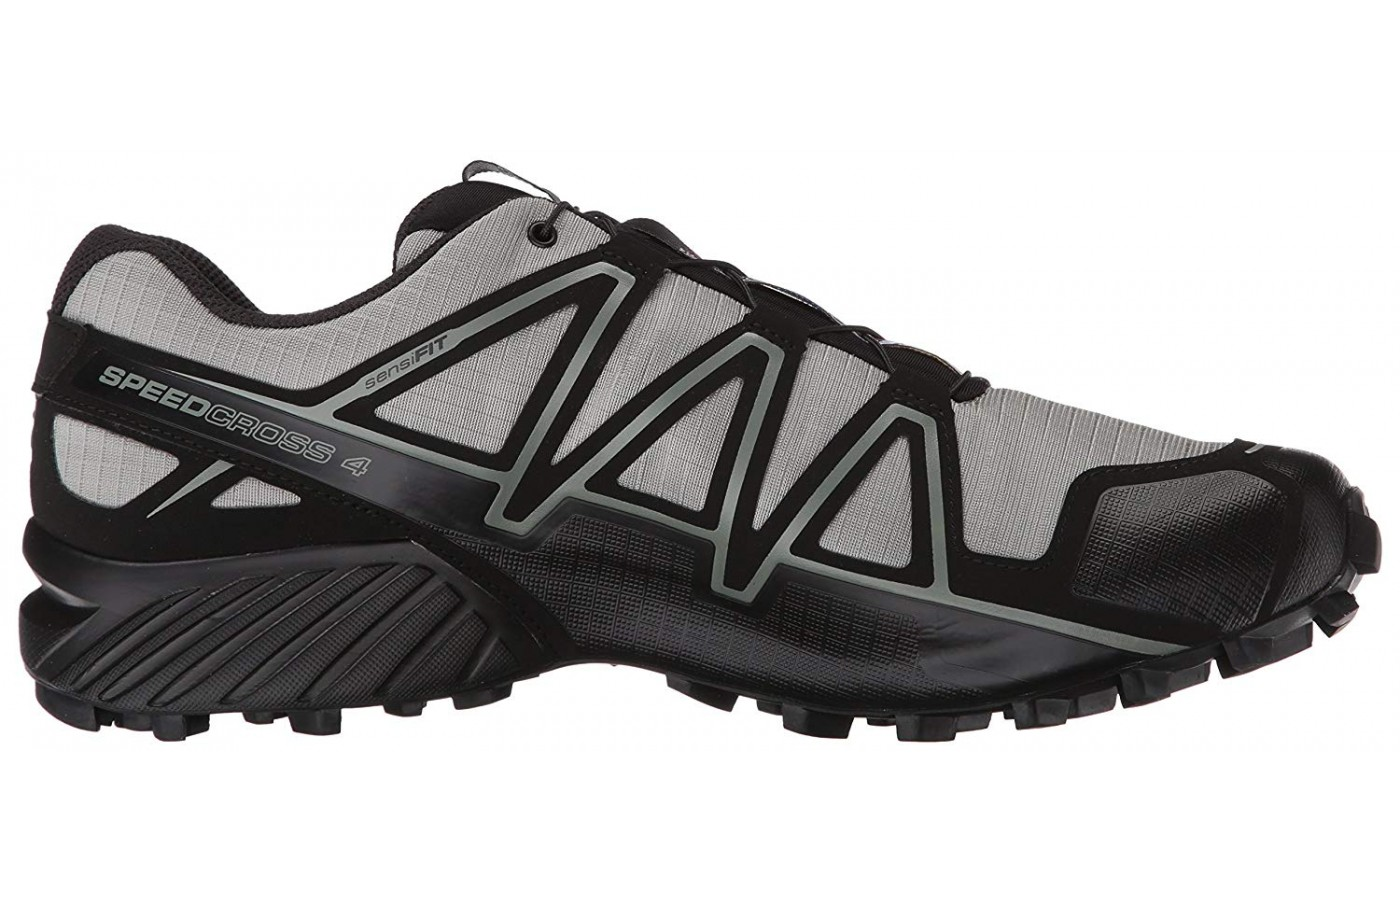 The Salomon Speedcross 4 is known for its durability